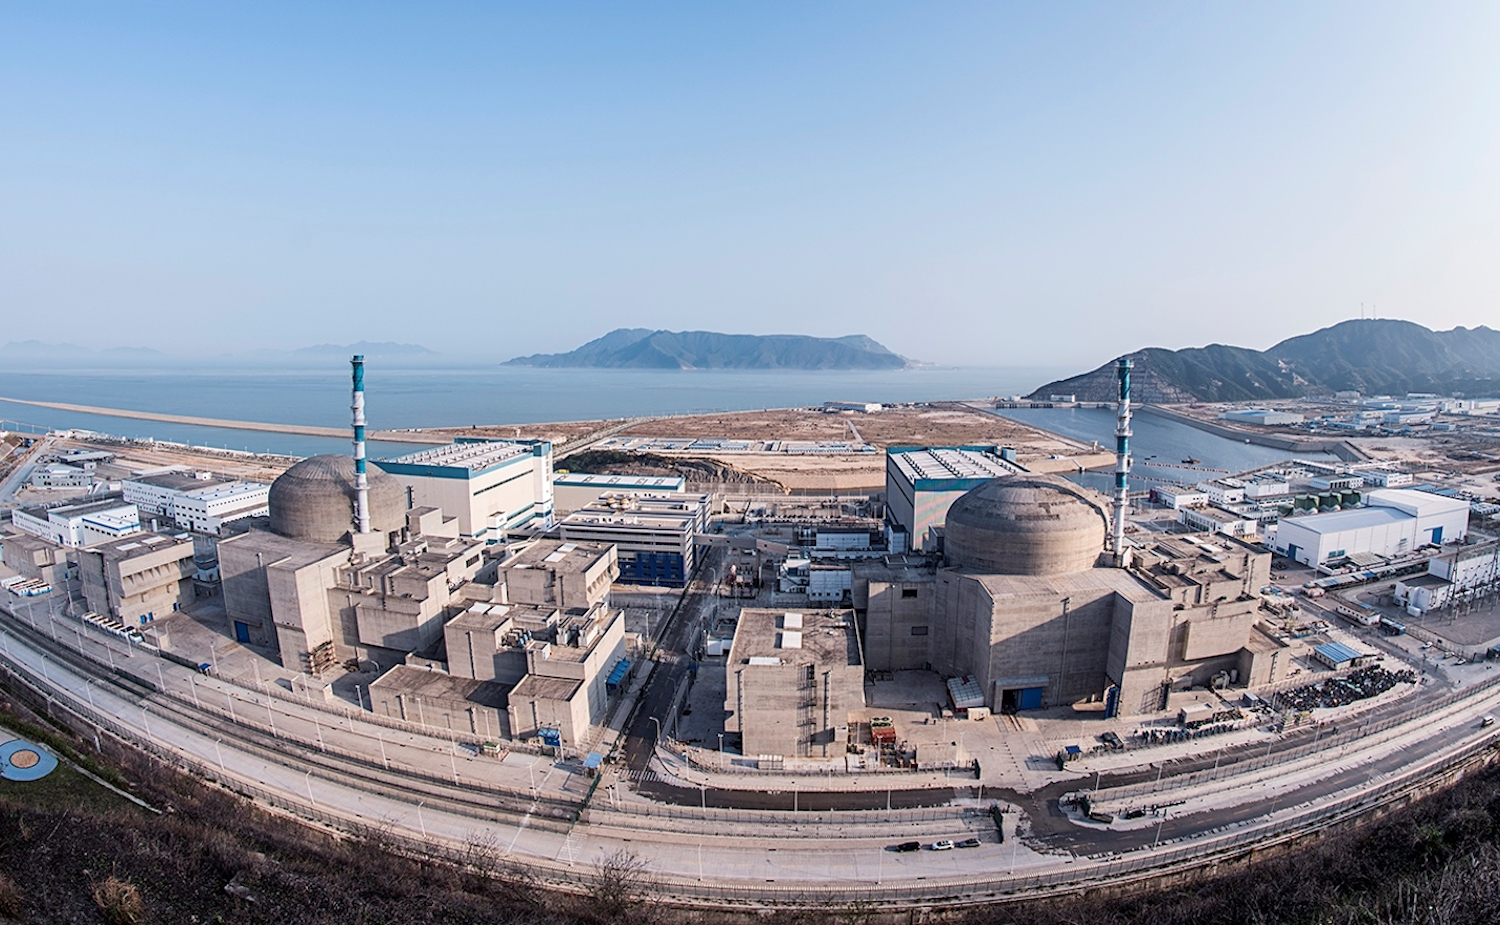 First made-in-China nuclear reactor online